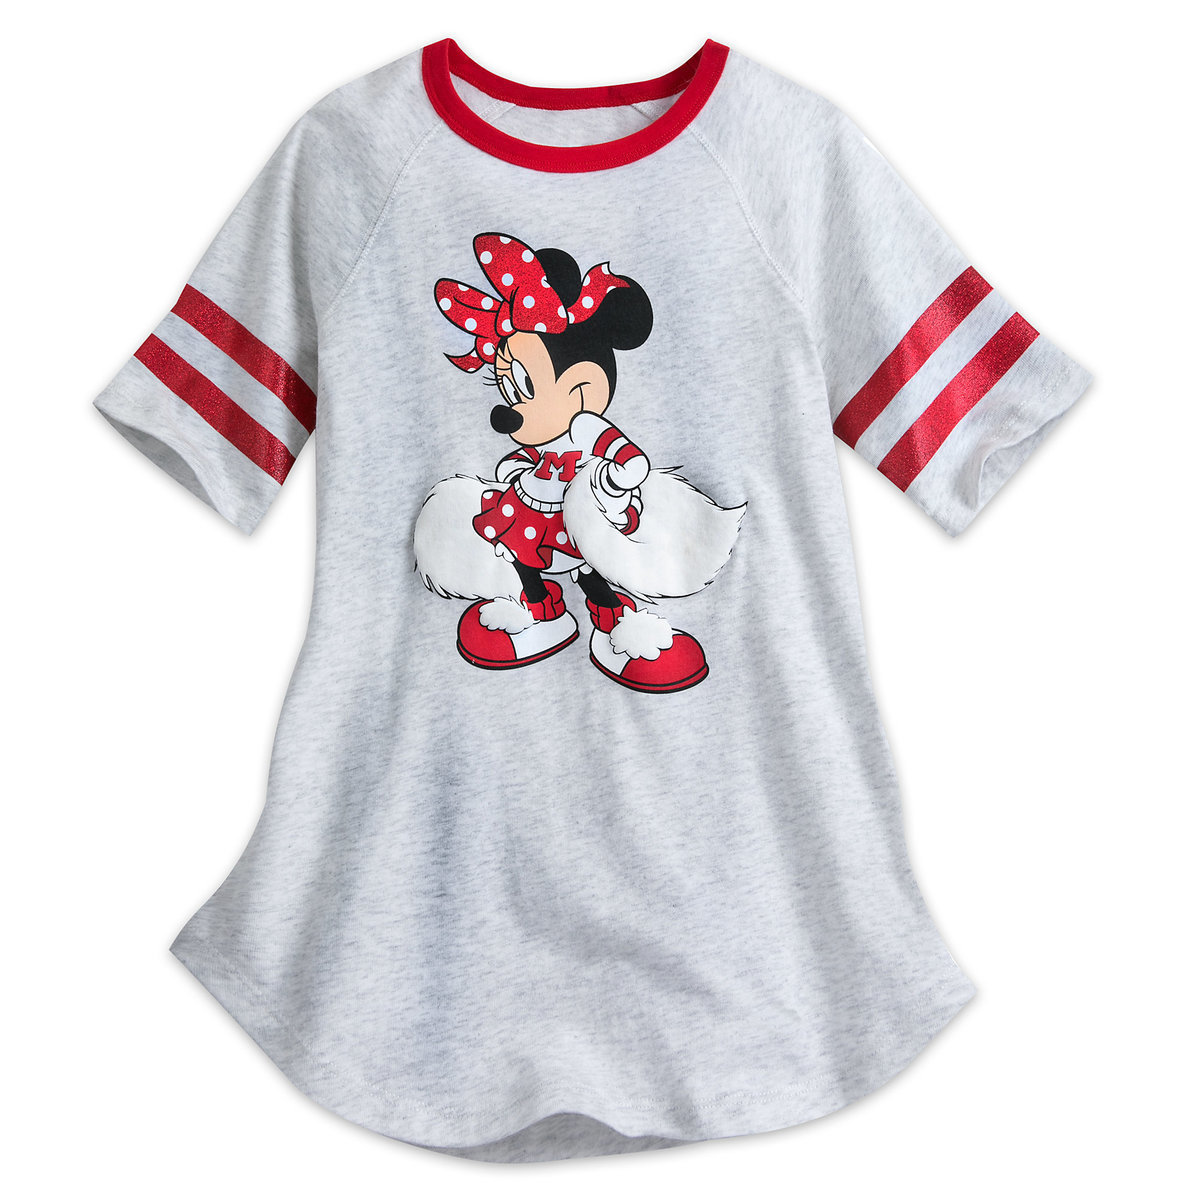 74e9ce88fe06 Product Image of Minnie Mouse Cheerleader Tee for Girls - Walt Disney World  # 1